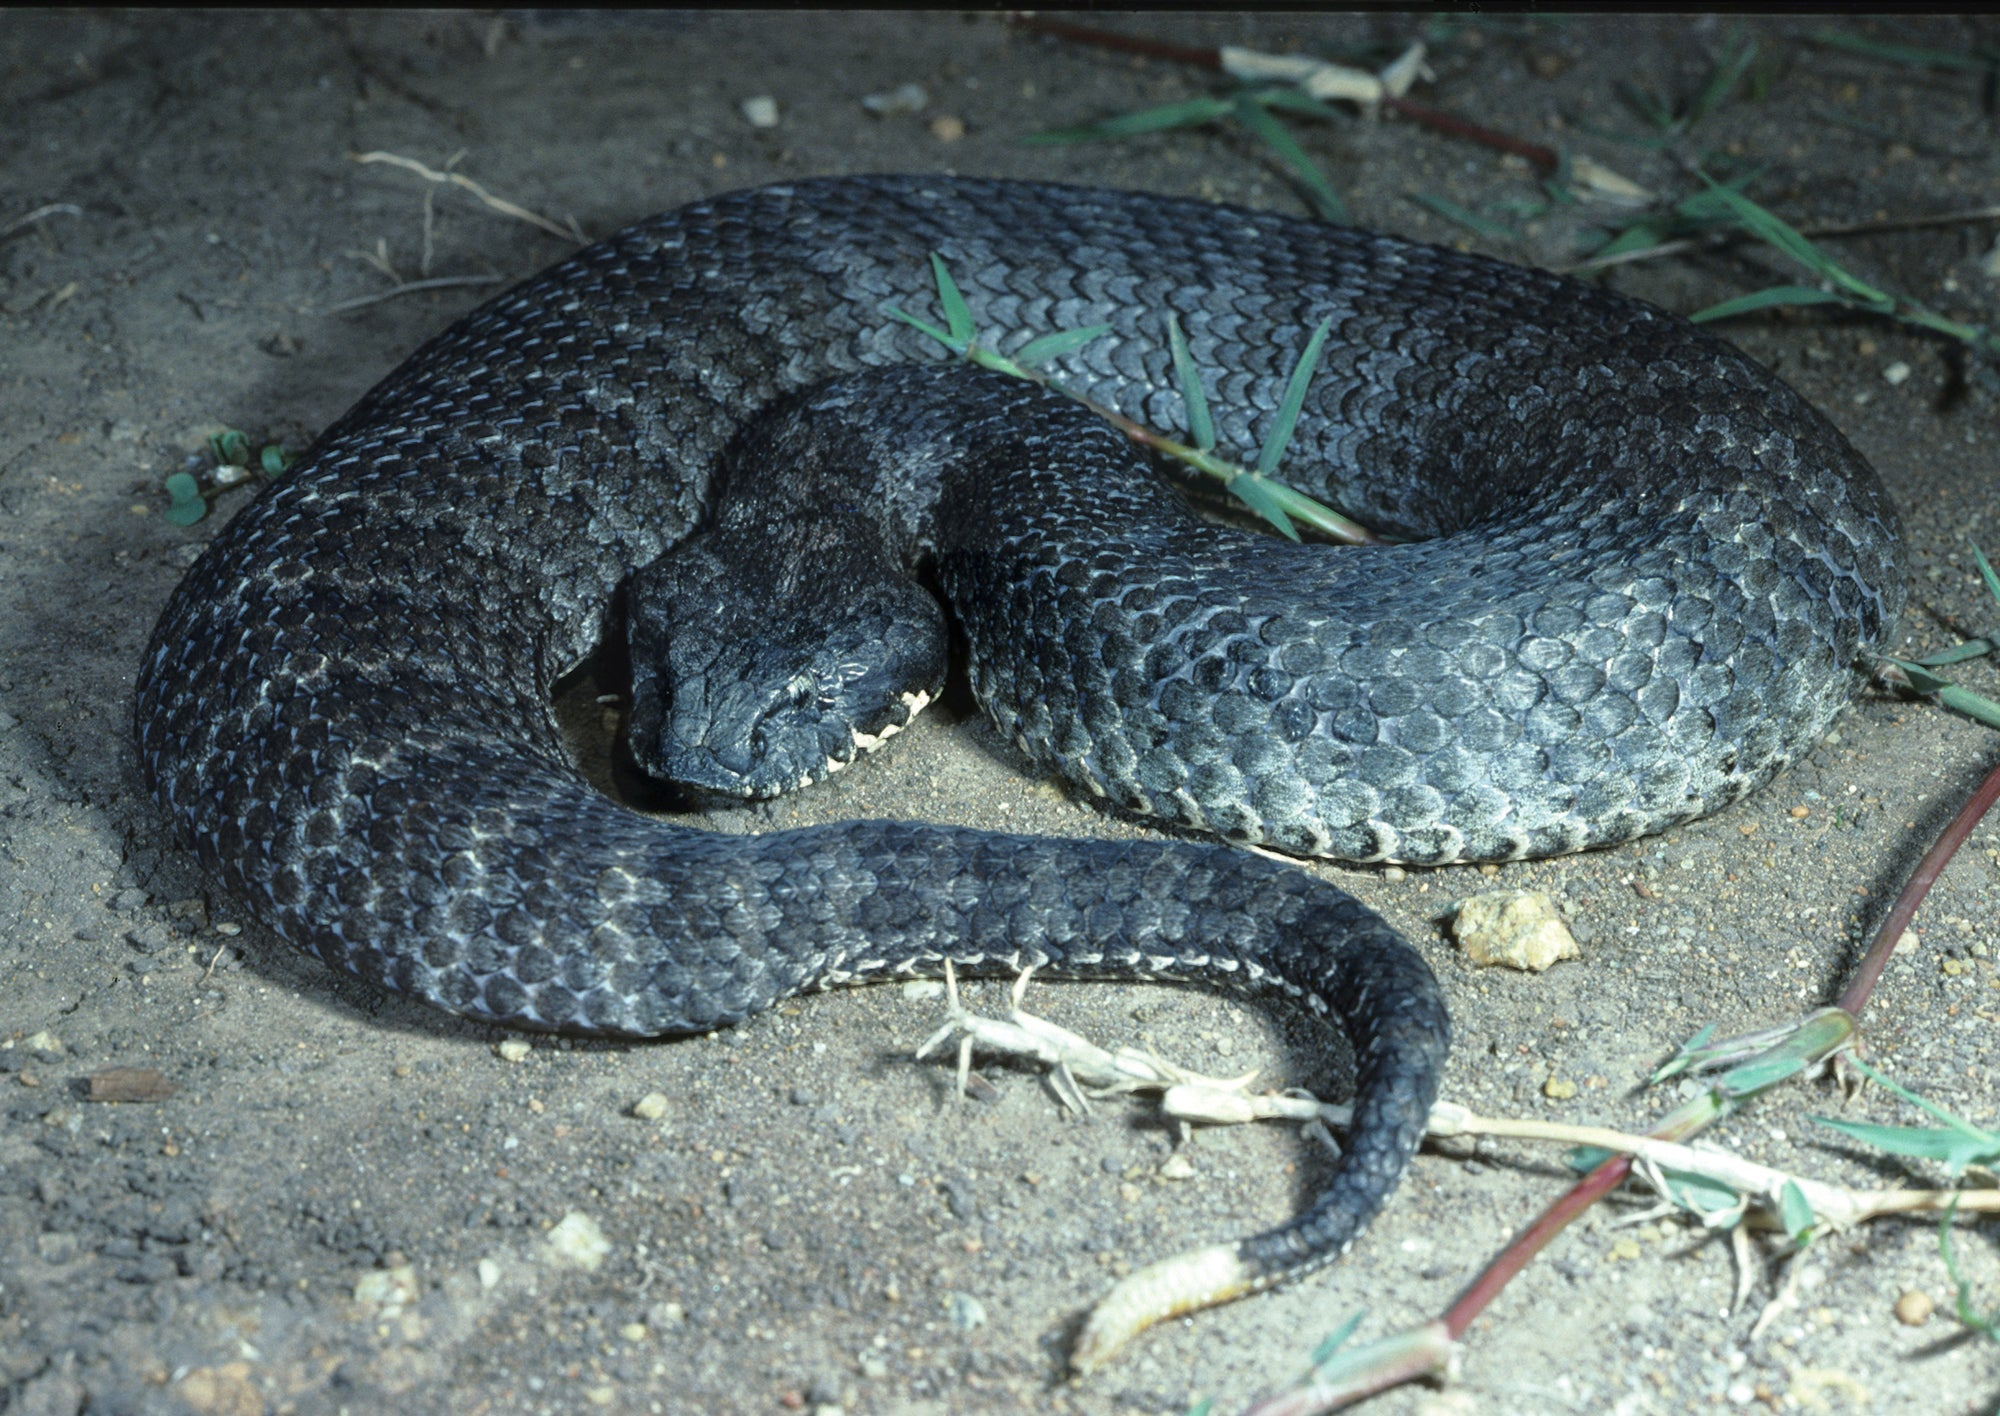 Top 10 Venomous Snakes to Look Out for on a Hunting Trip